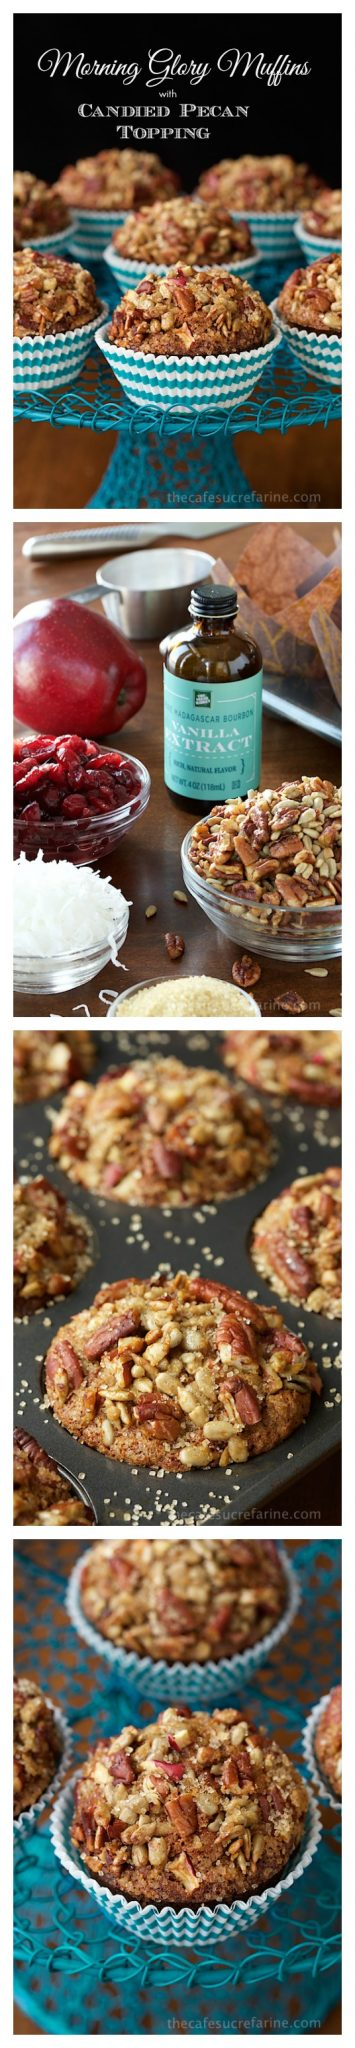 "Morning Glory Muffins with Candied Pecan Topping - this is one of those ""never-fail"" recipes! The muffins always come up tall and pretty. I love that they're so delicious and loaded with healthy ingredients at the same time. Oh, and the candied pecan topping is totally amazing!"